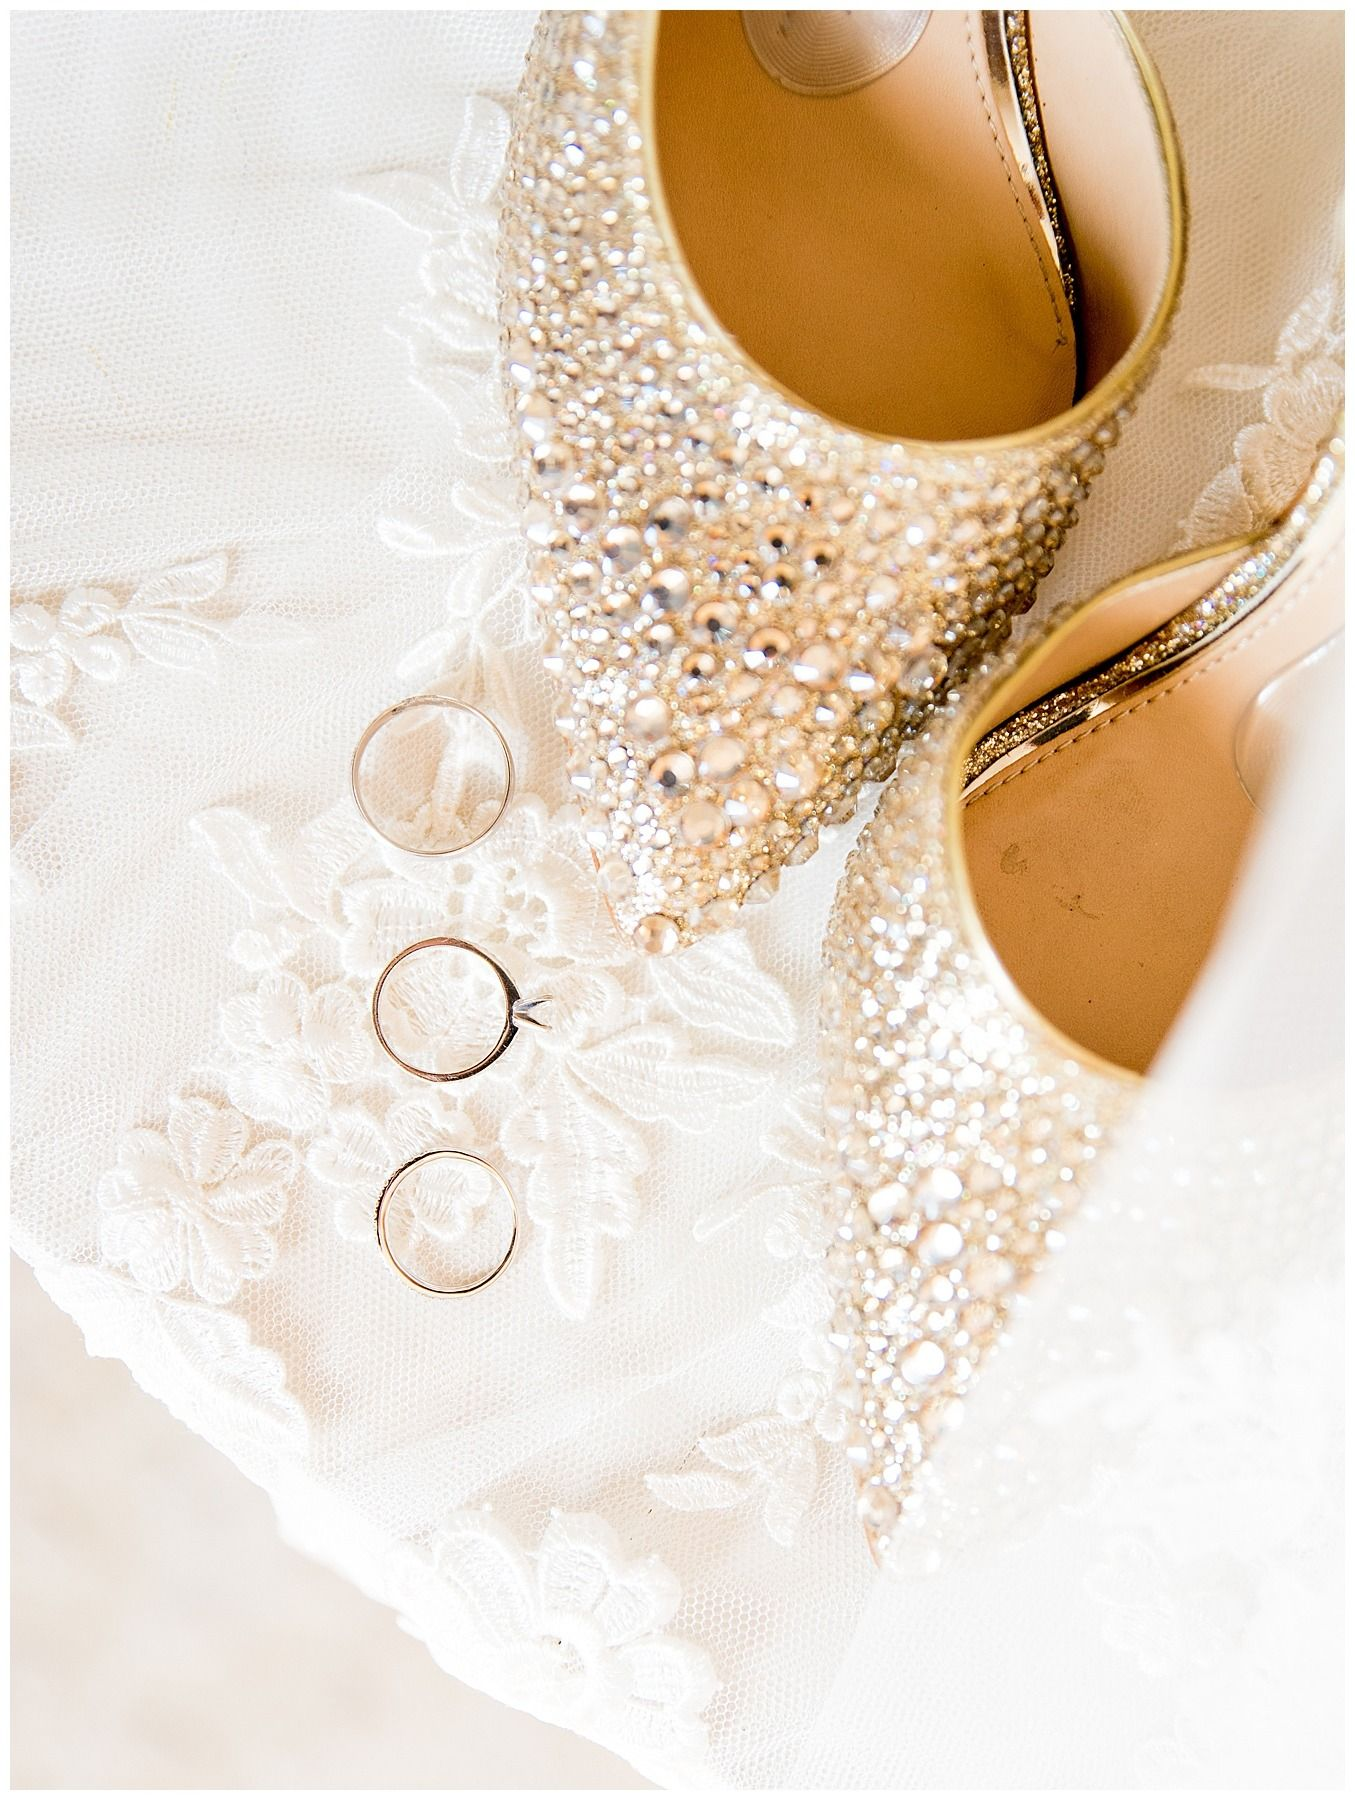 diamond bedazzled shoes and wedding rings for Chicago winter wedding